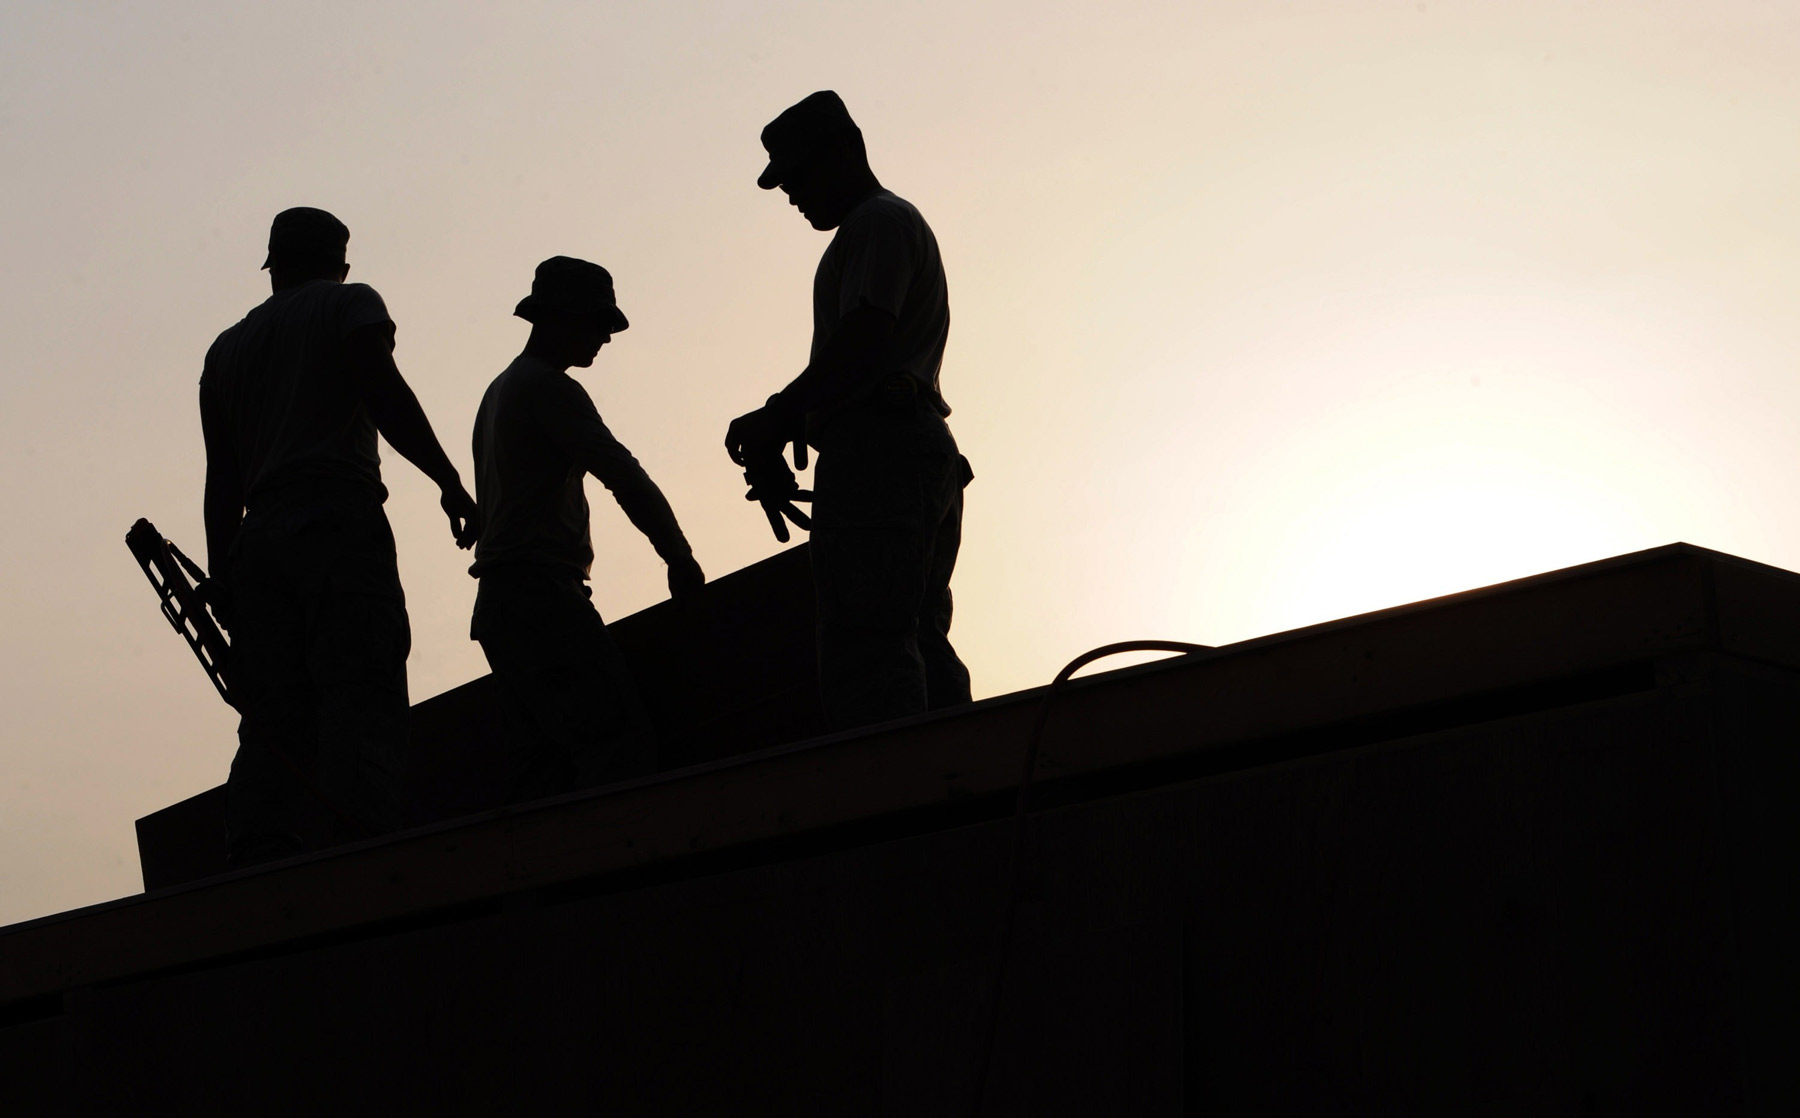 commercial roofing & exterior construction service companies